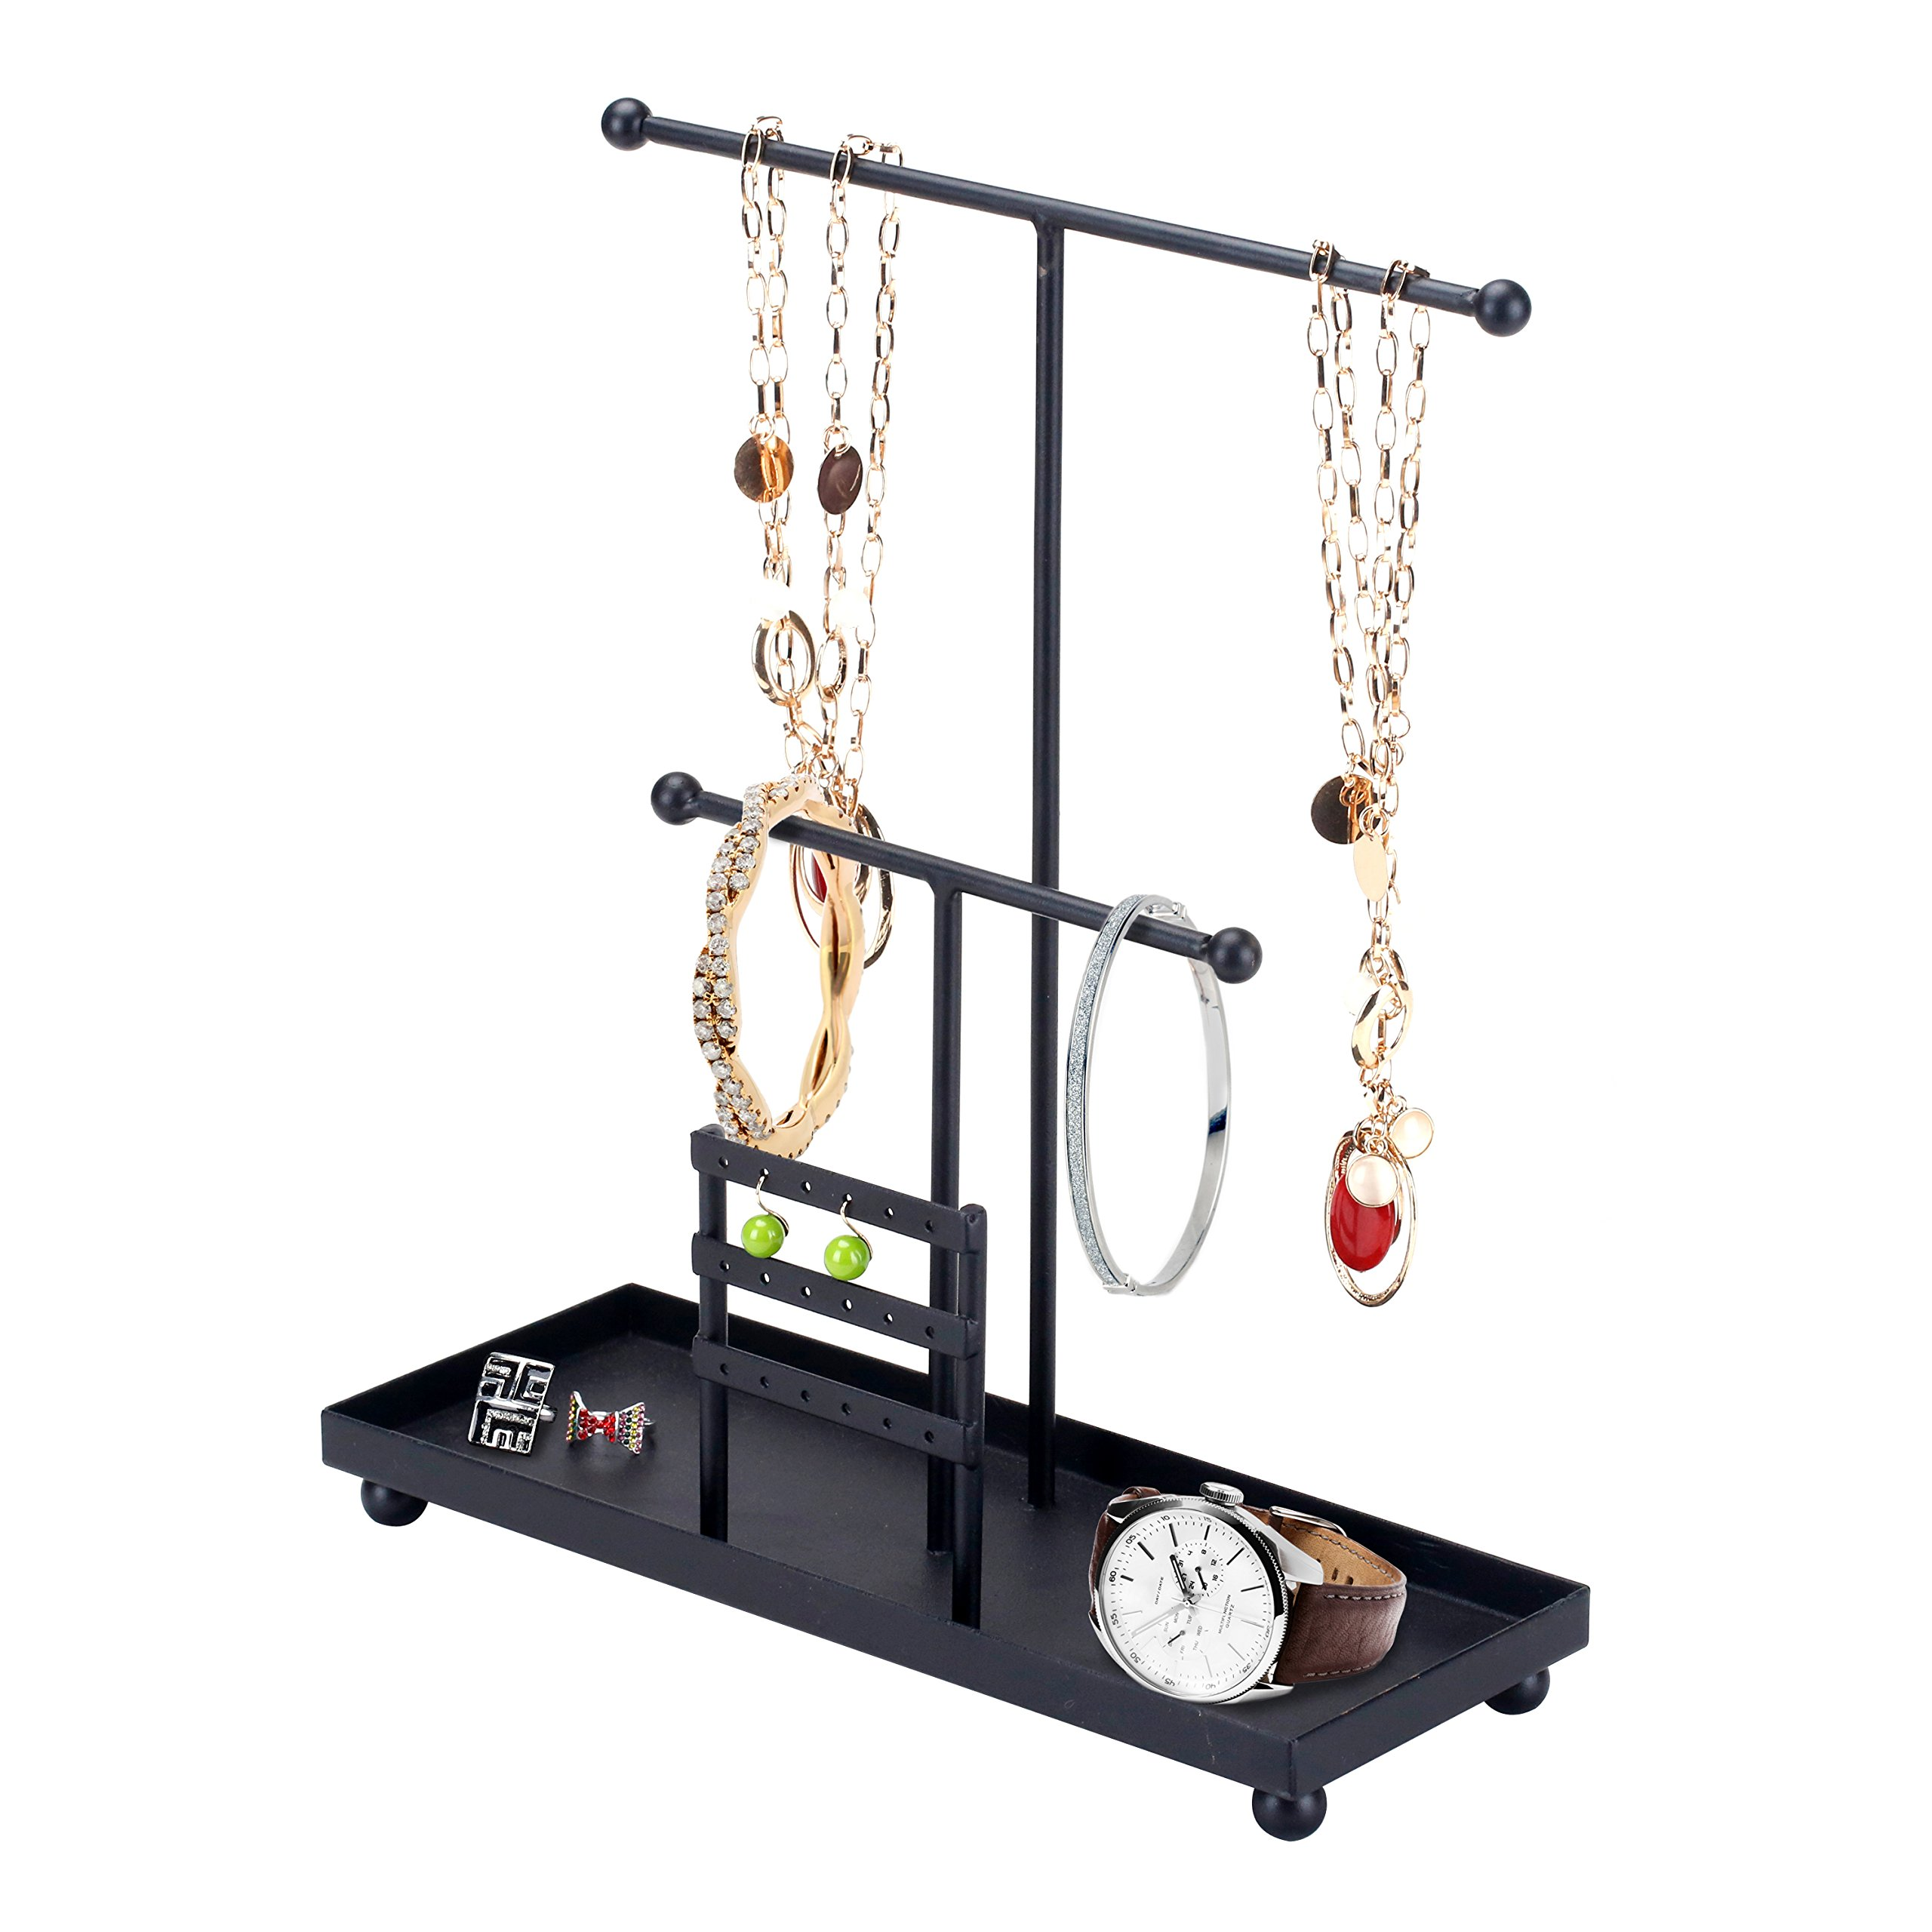 2 T-Bar Modern Metal Jewelry Bracelet, Necklace and Earring Hanger Display Organizer w/ Ring Tray, Black